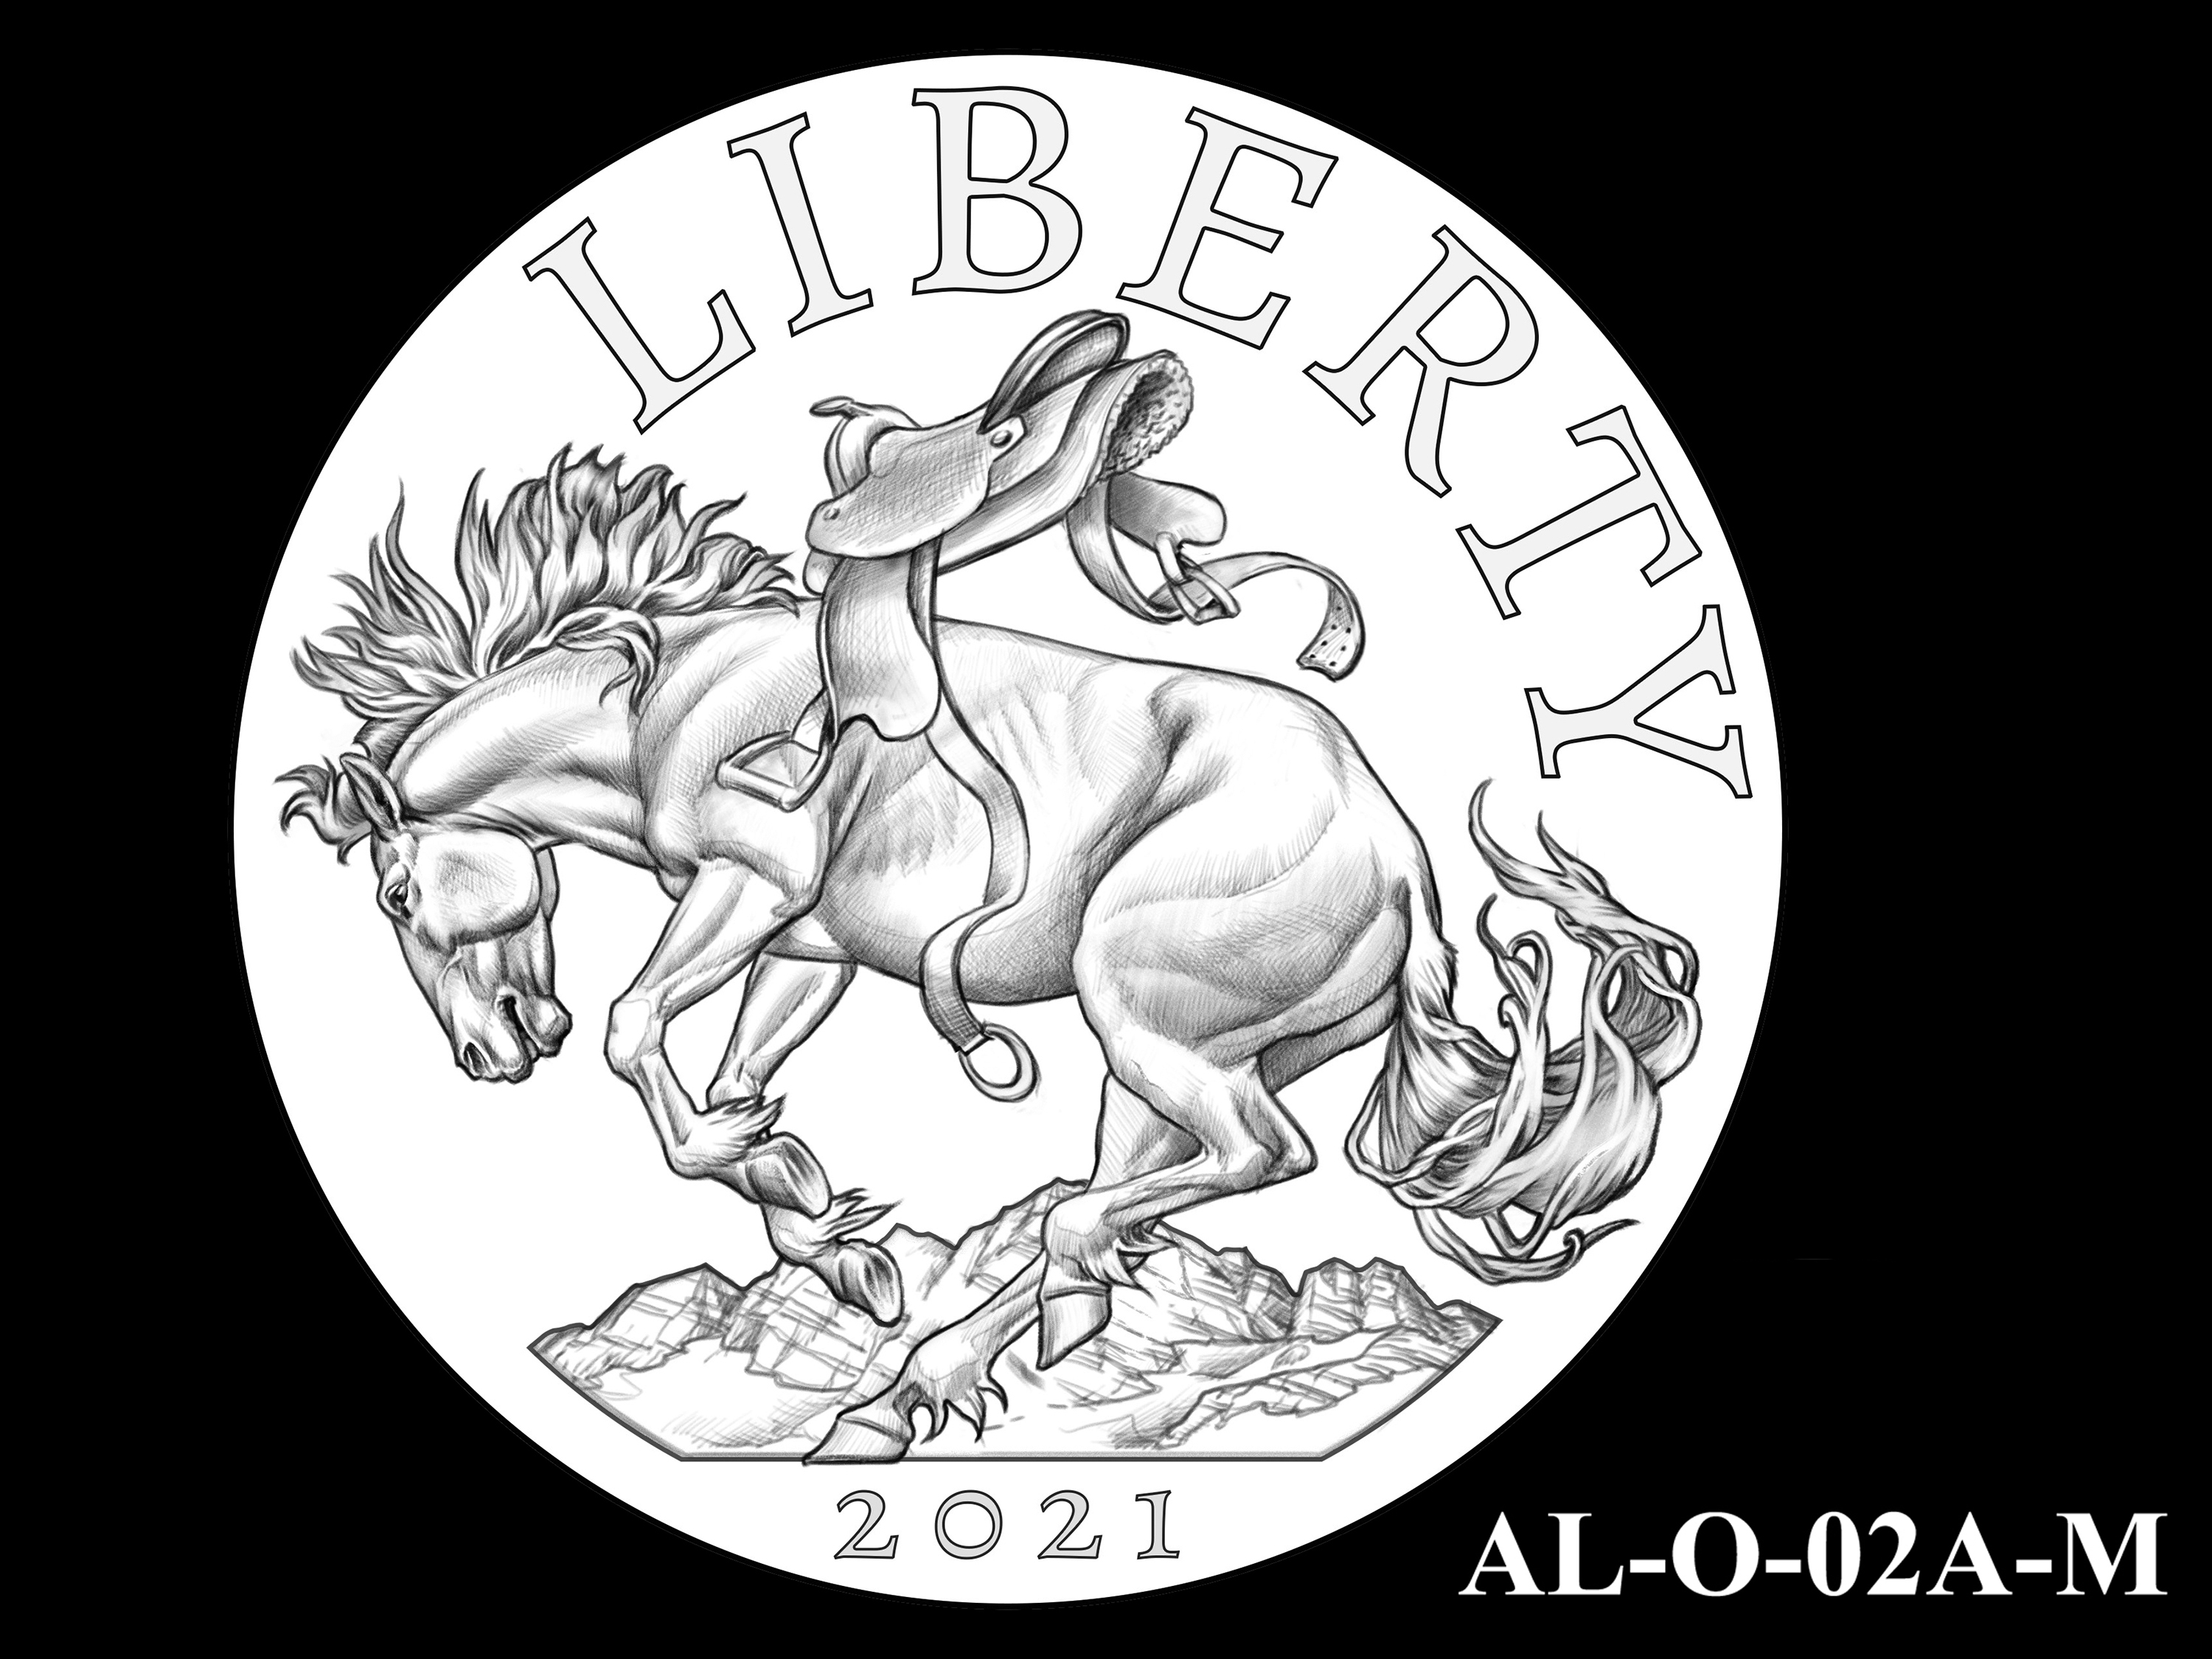 AL-O-02A-M -- 2021 American Liberty Gold Coin and Silver Medal Program - Obverse